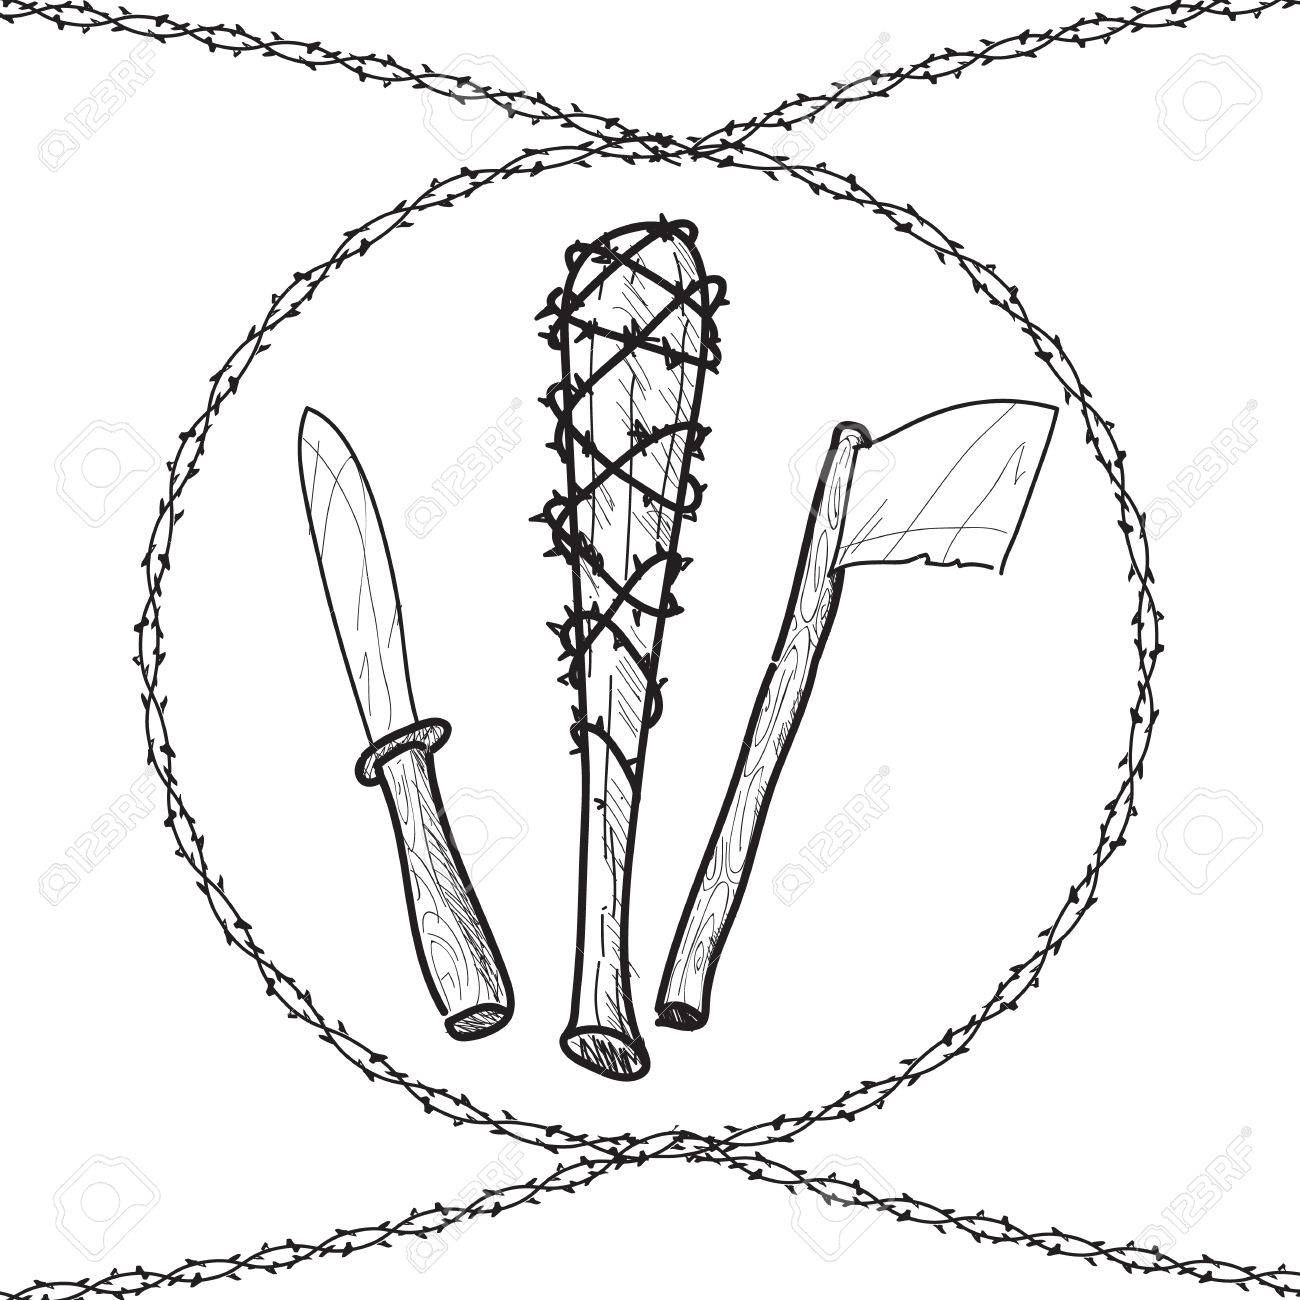 1300x1300 Knives Axes Baseball Wire Barb Bats Sketch Illustration Royalty